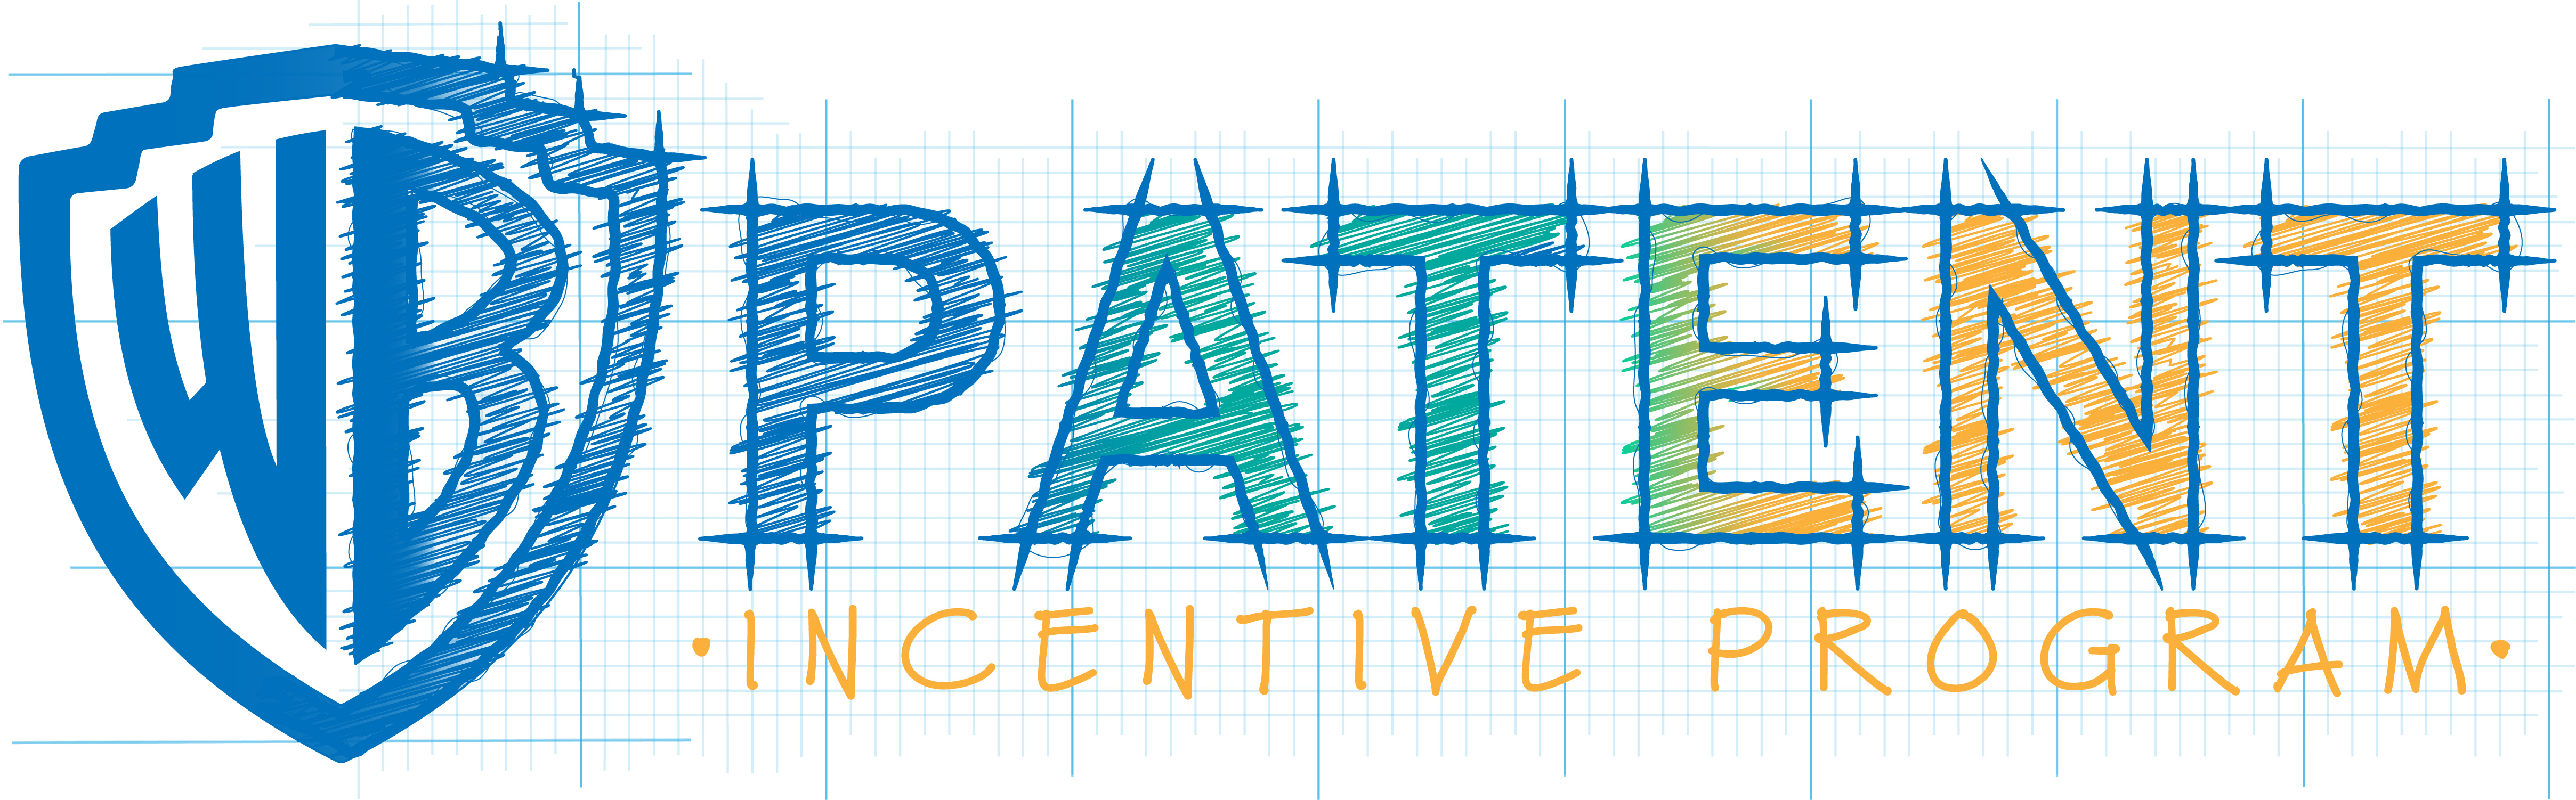 PATENT INCENTIVE PROGRAM